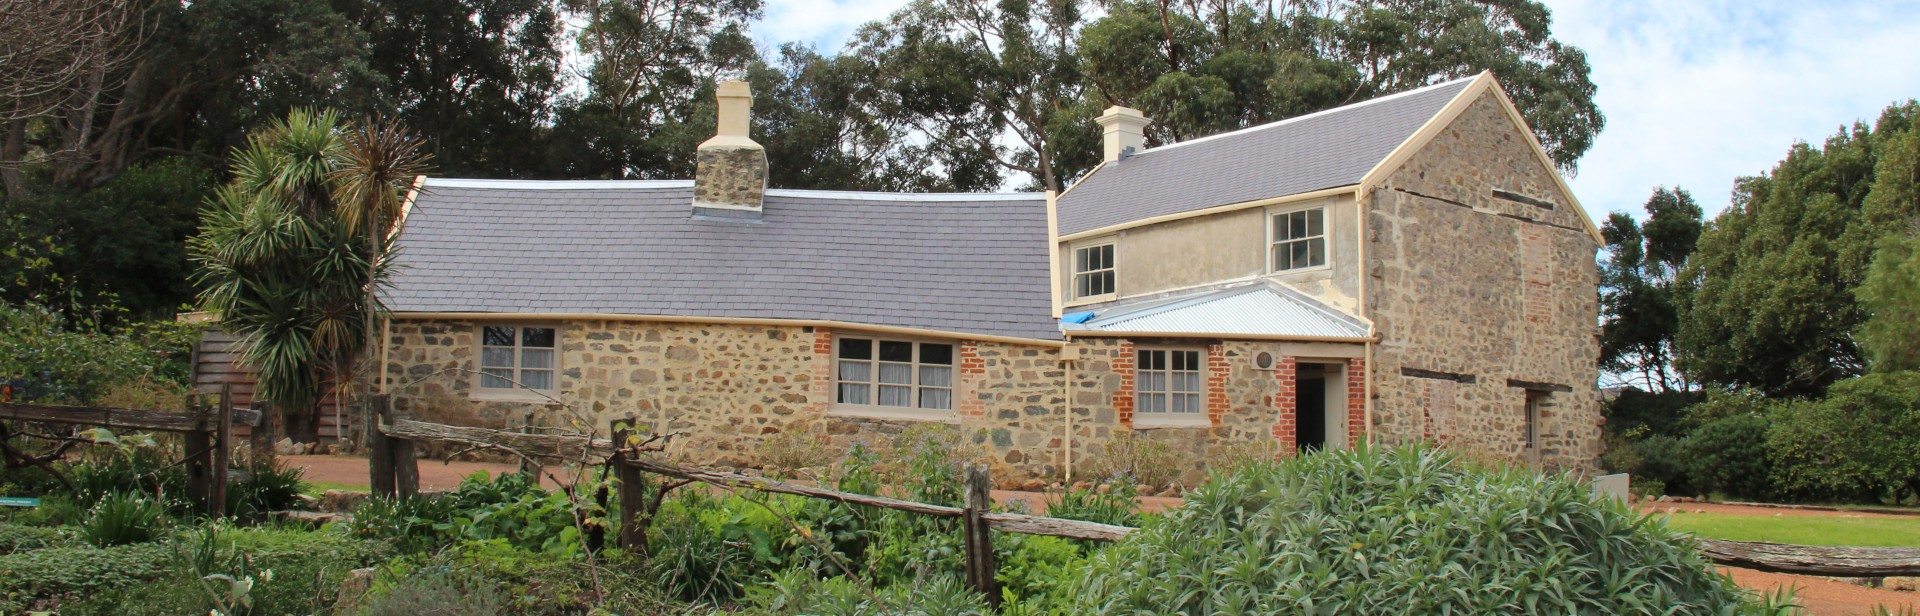 Old Farm, Strawberry Hill - Albany